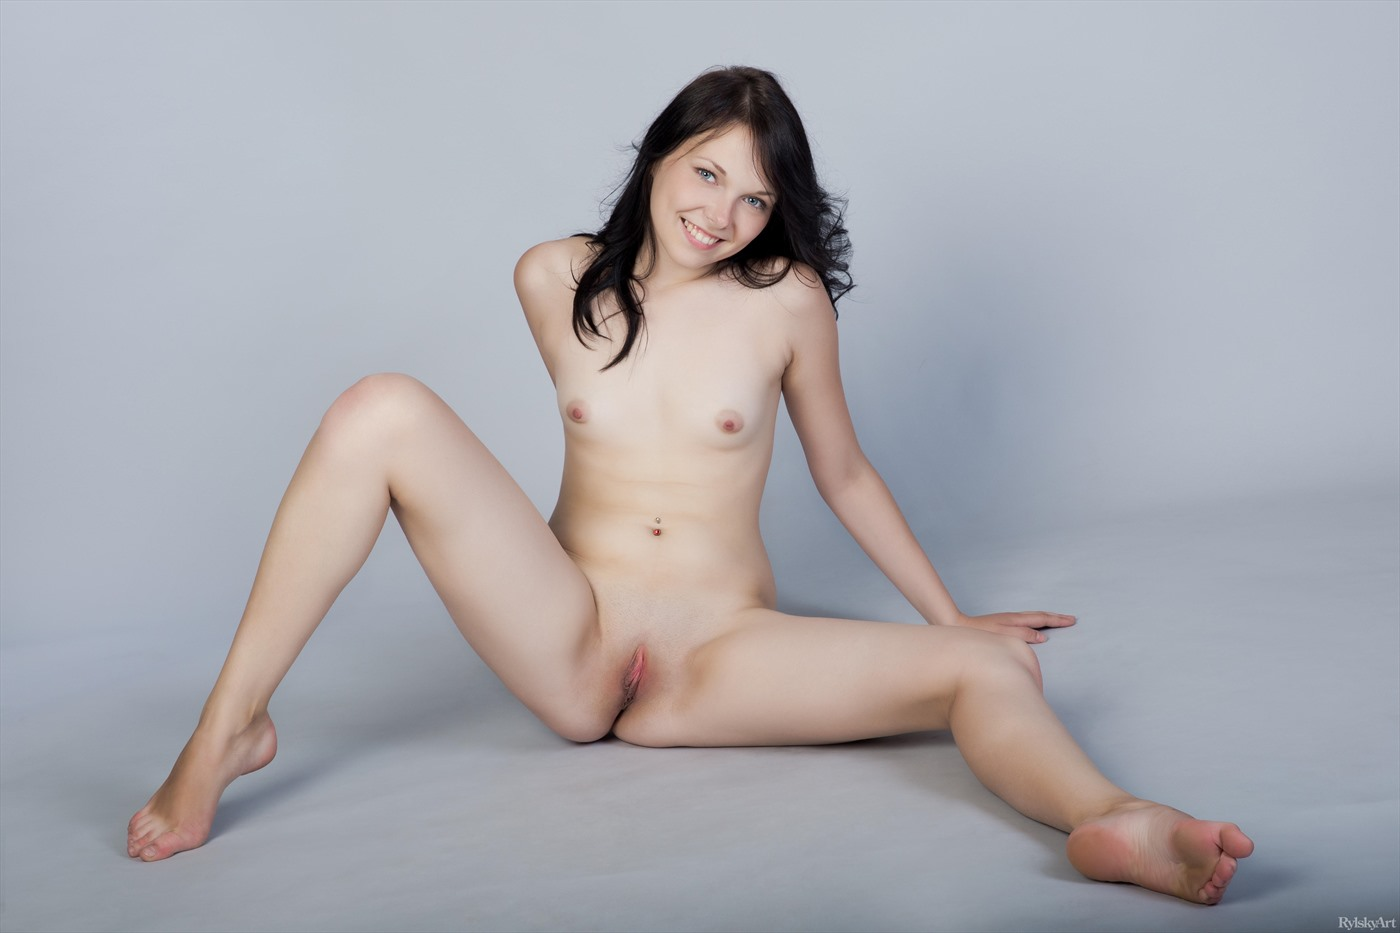 For nude pictures search